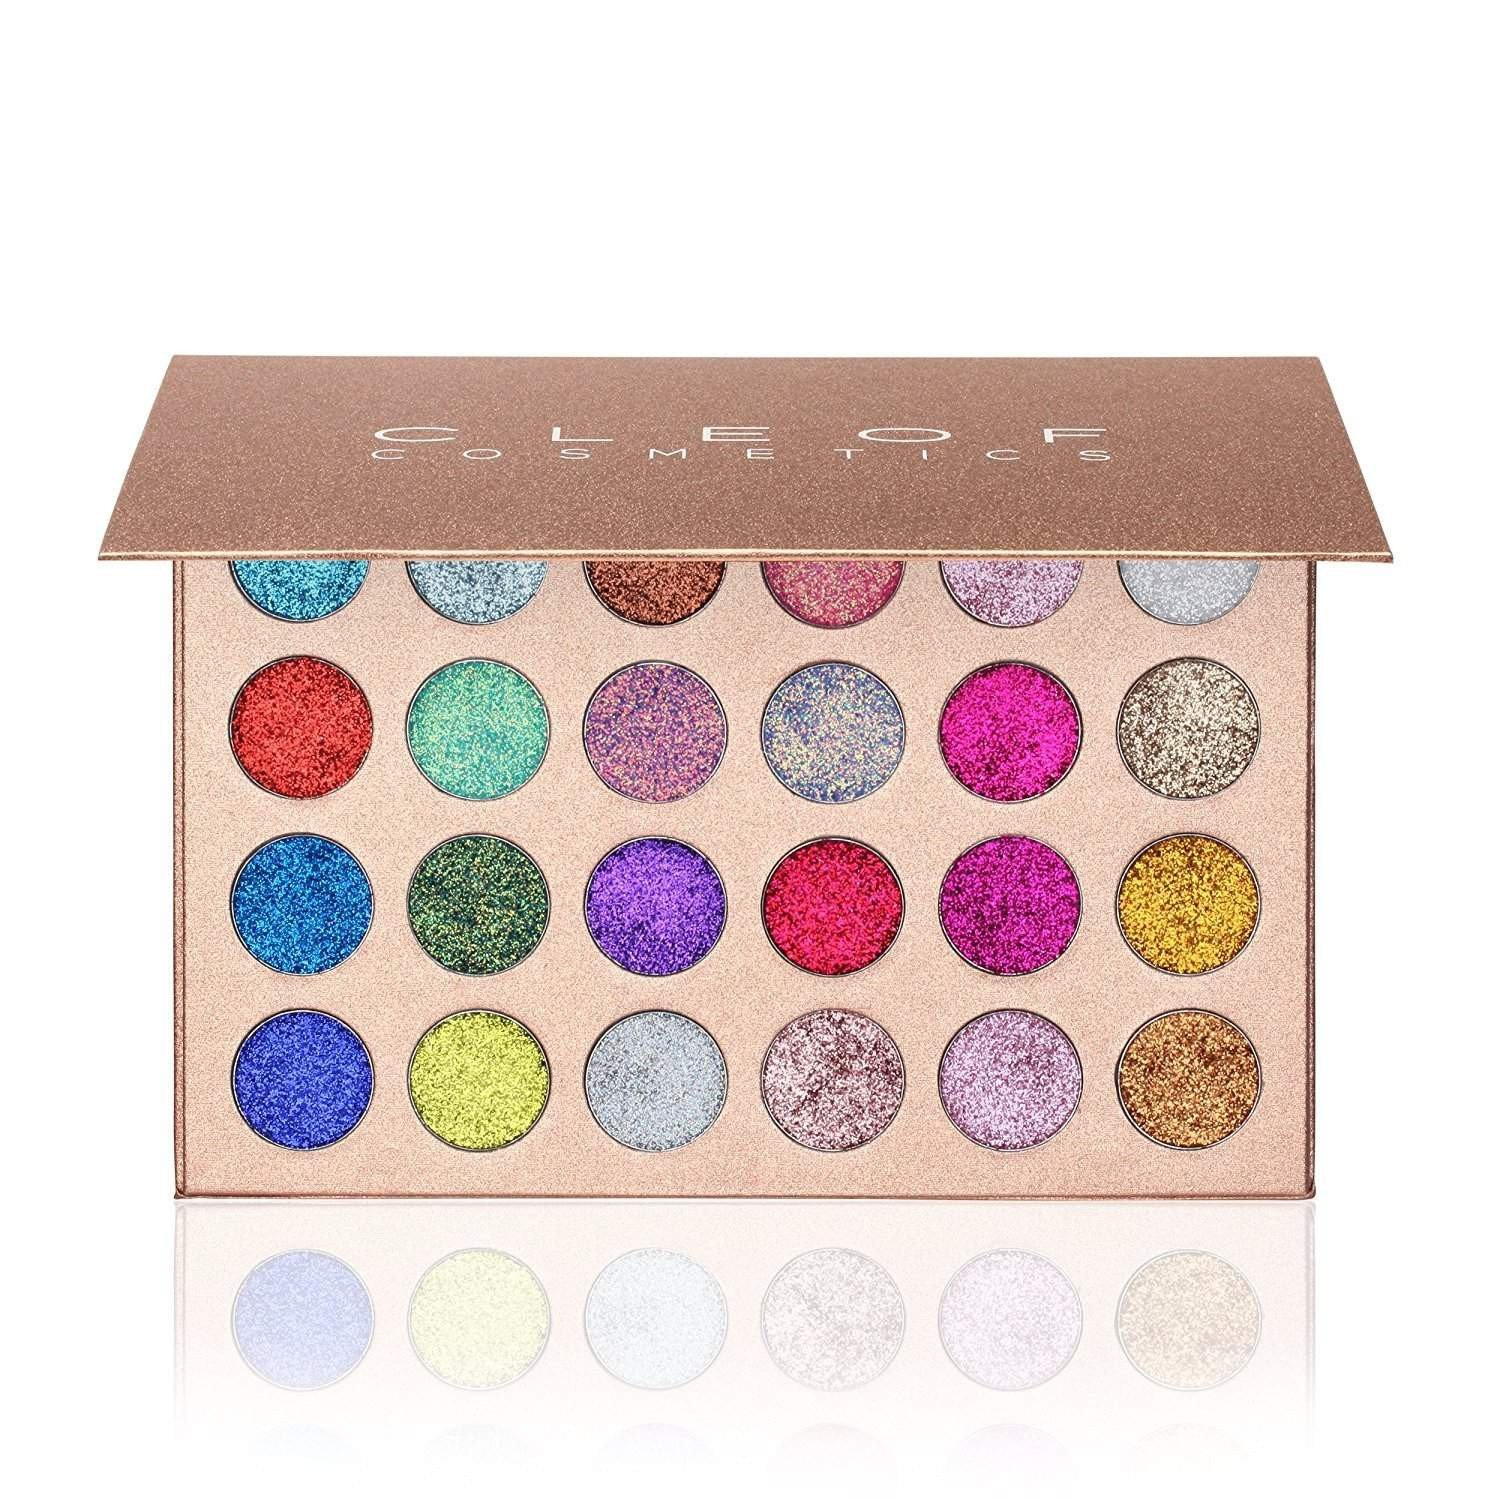 CLEOF Cosmetics Unicorn Glitter Eyeshadow Palette 24 สี